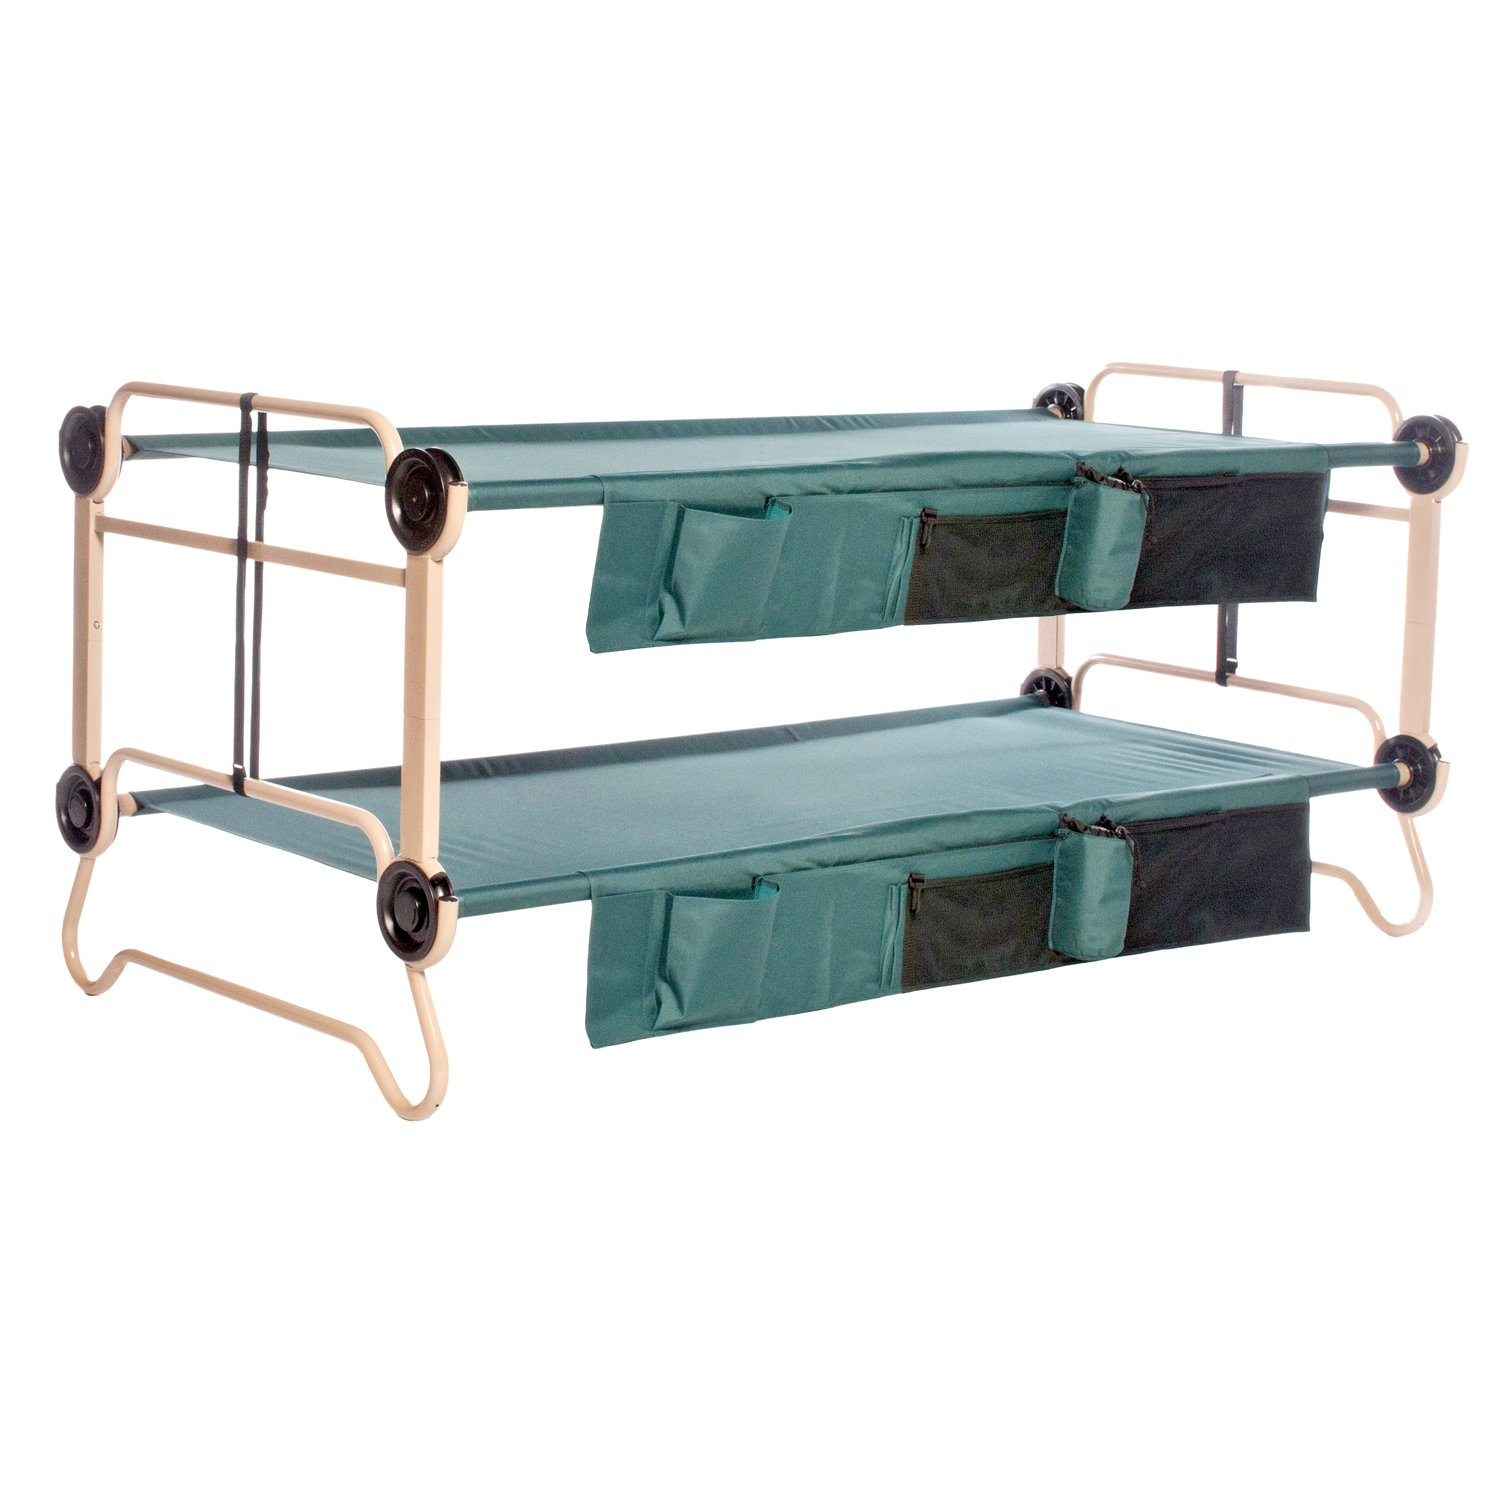 Heavy Duty Camping Bunk Beds